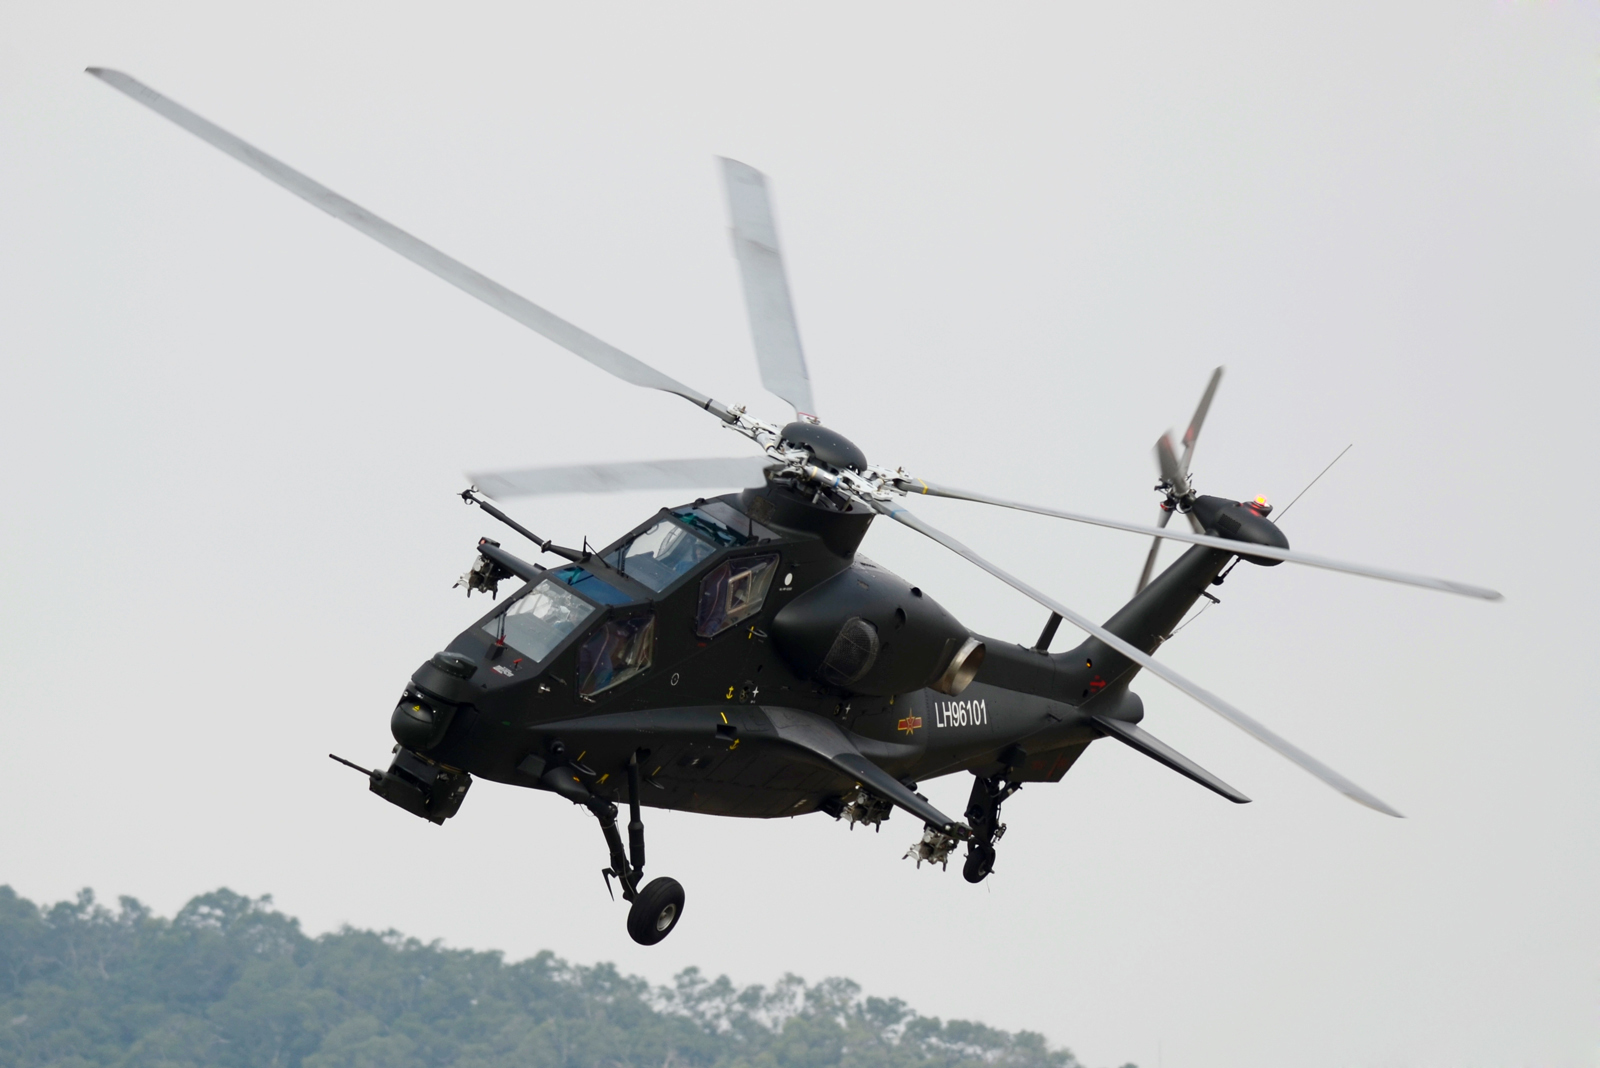 http://3.bp.blogspot.com/-hLY4ENhpC4c/UK7YXxb-pQI/AAAAAAAAVDo/L1AKMpXhzCk/s1600/armed+Chinese+Z-10+Attack+Helicopter+gunship+PLA+Peoples+Liberation+Army+Air+Force+export+pakitan+missile+hj10+atgm+rocket+(1).jpg